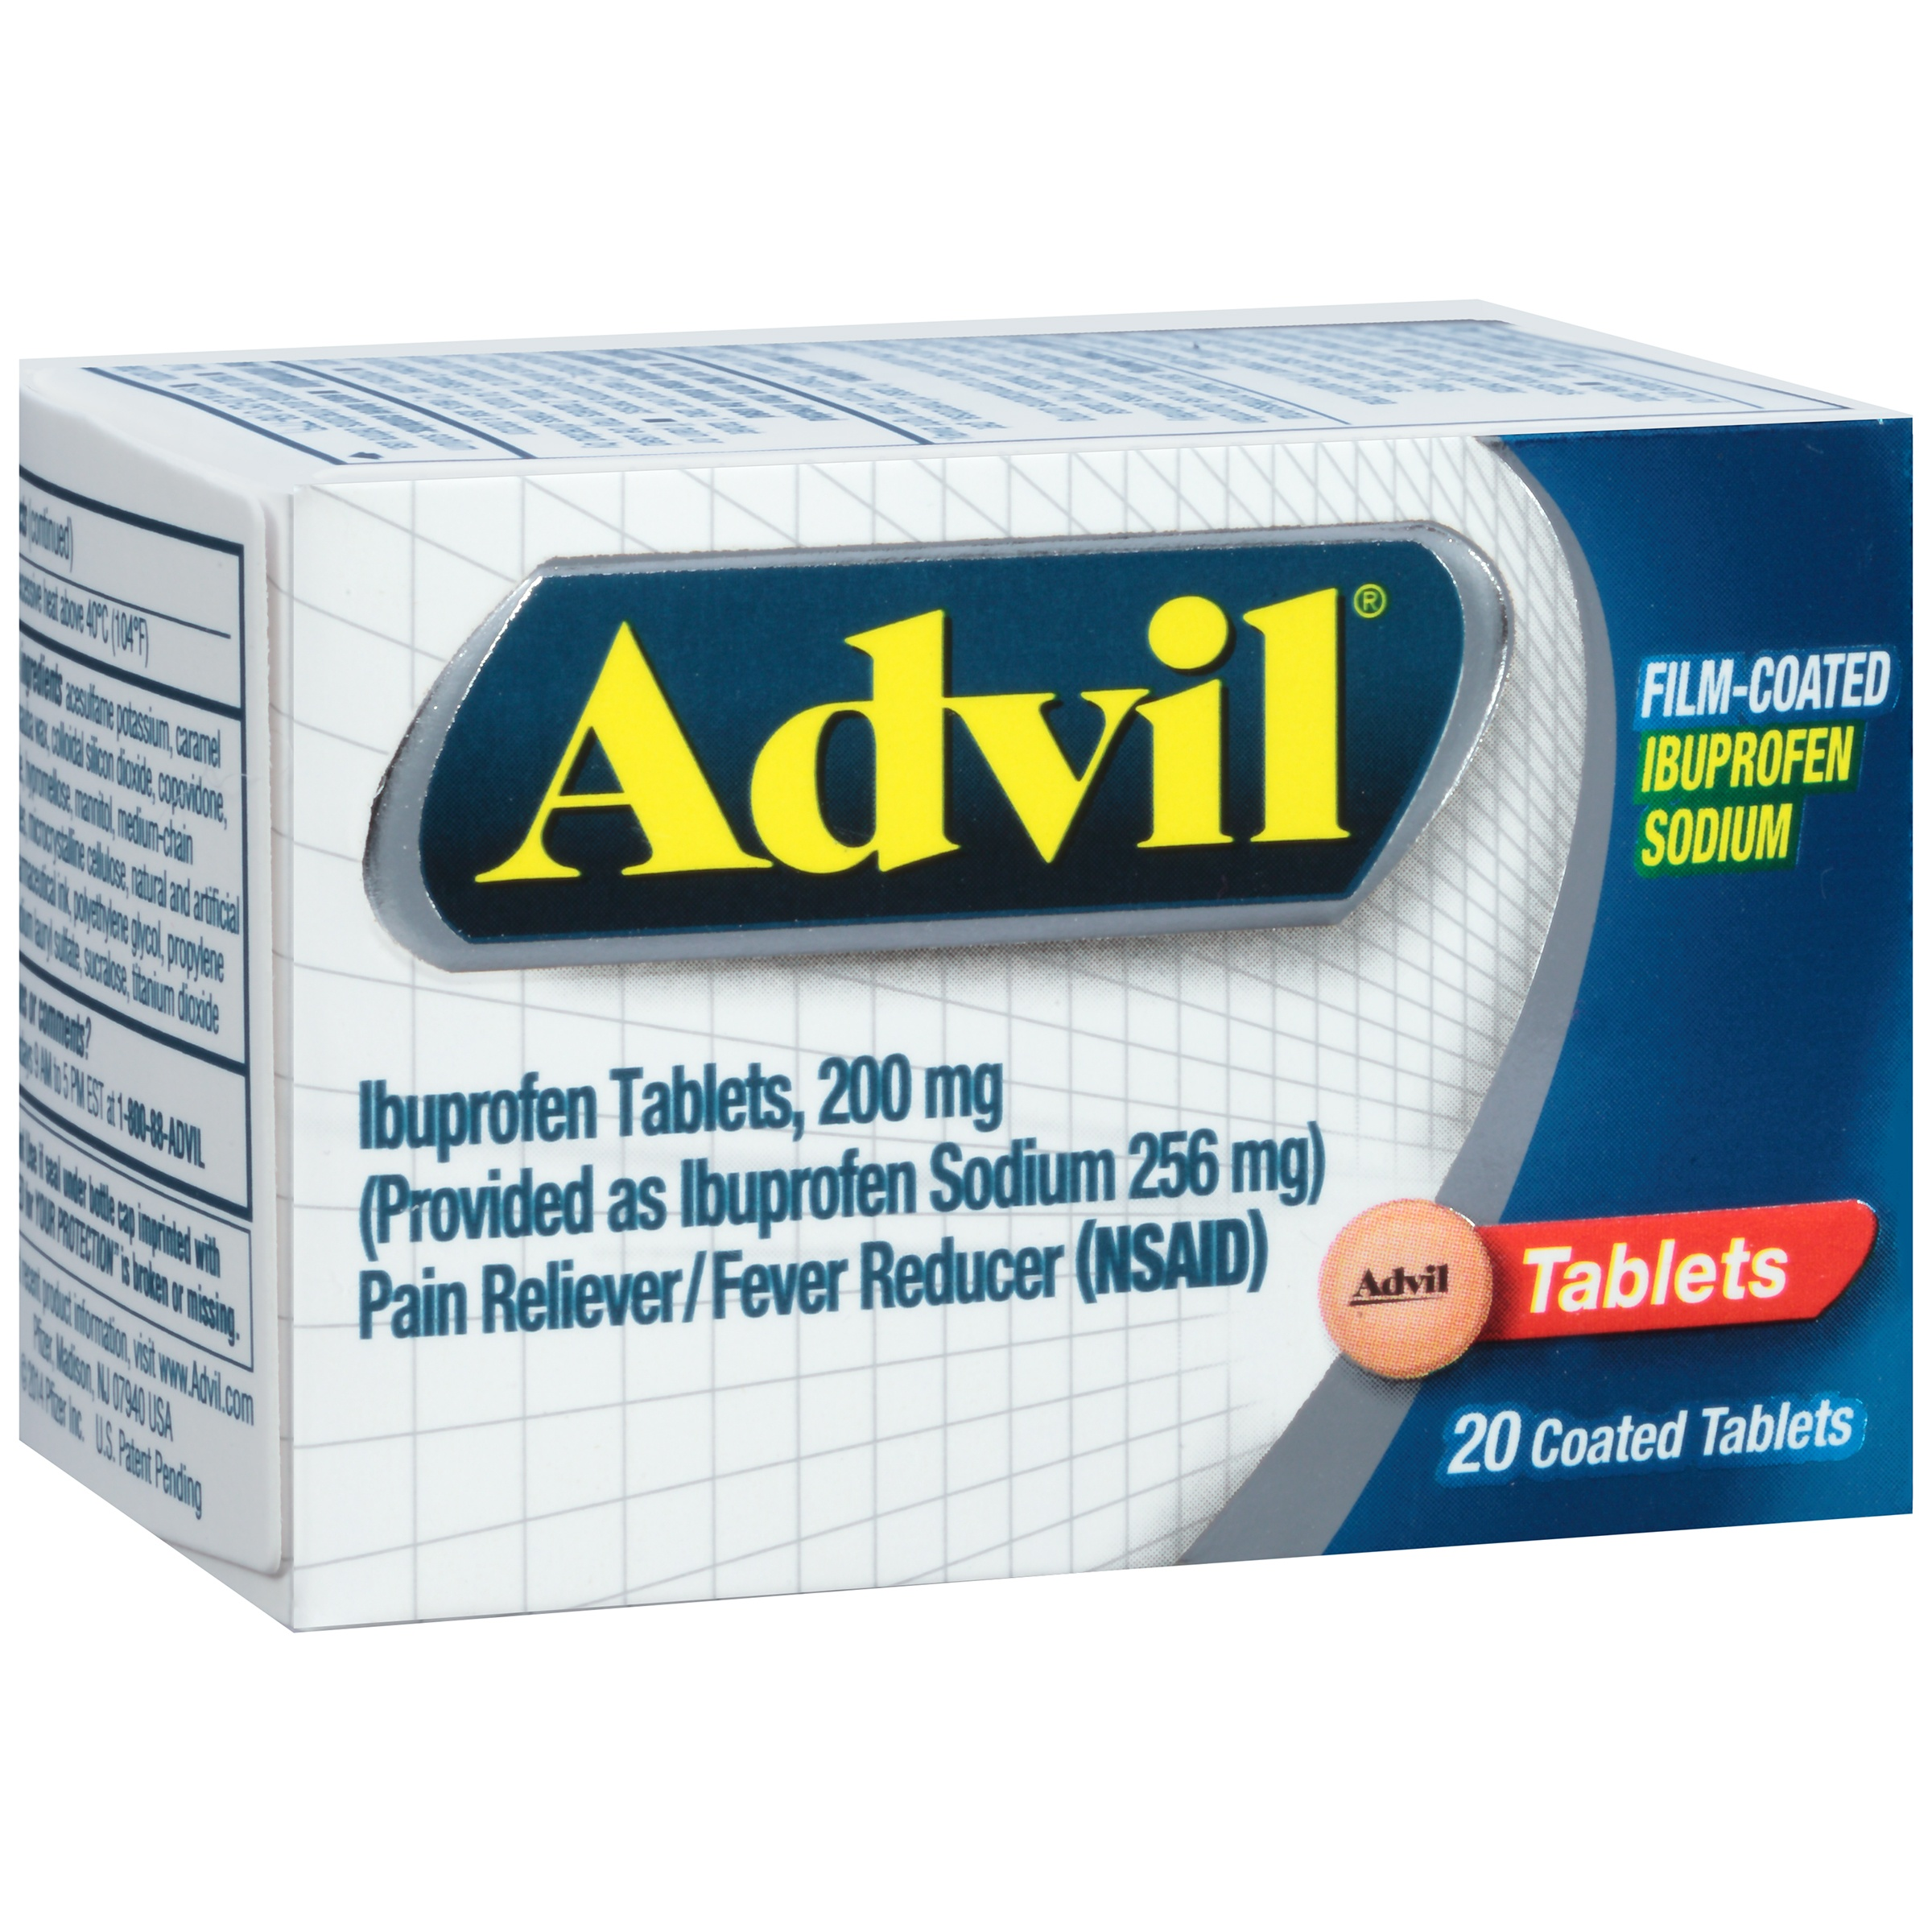 Advil Film-Coated (20 Count) Pain Reliever / Fever Reducer Tablet, 200mg Ibuprofen, Temporary Pain Relief